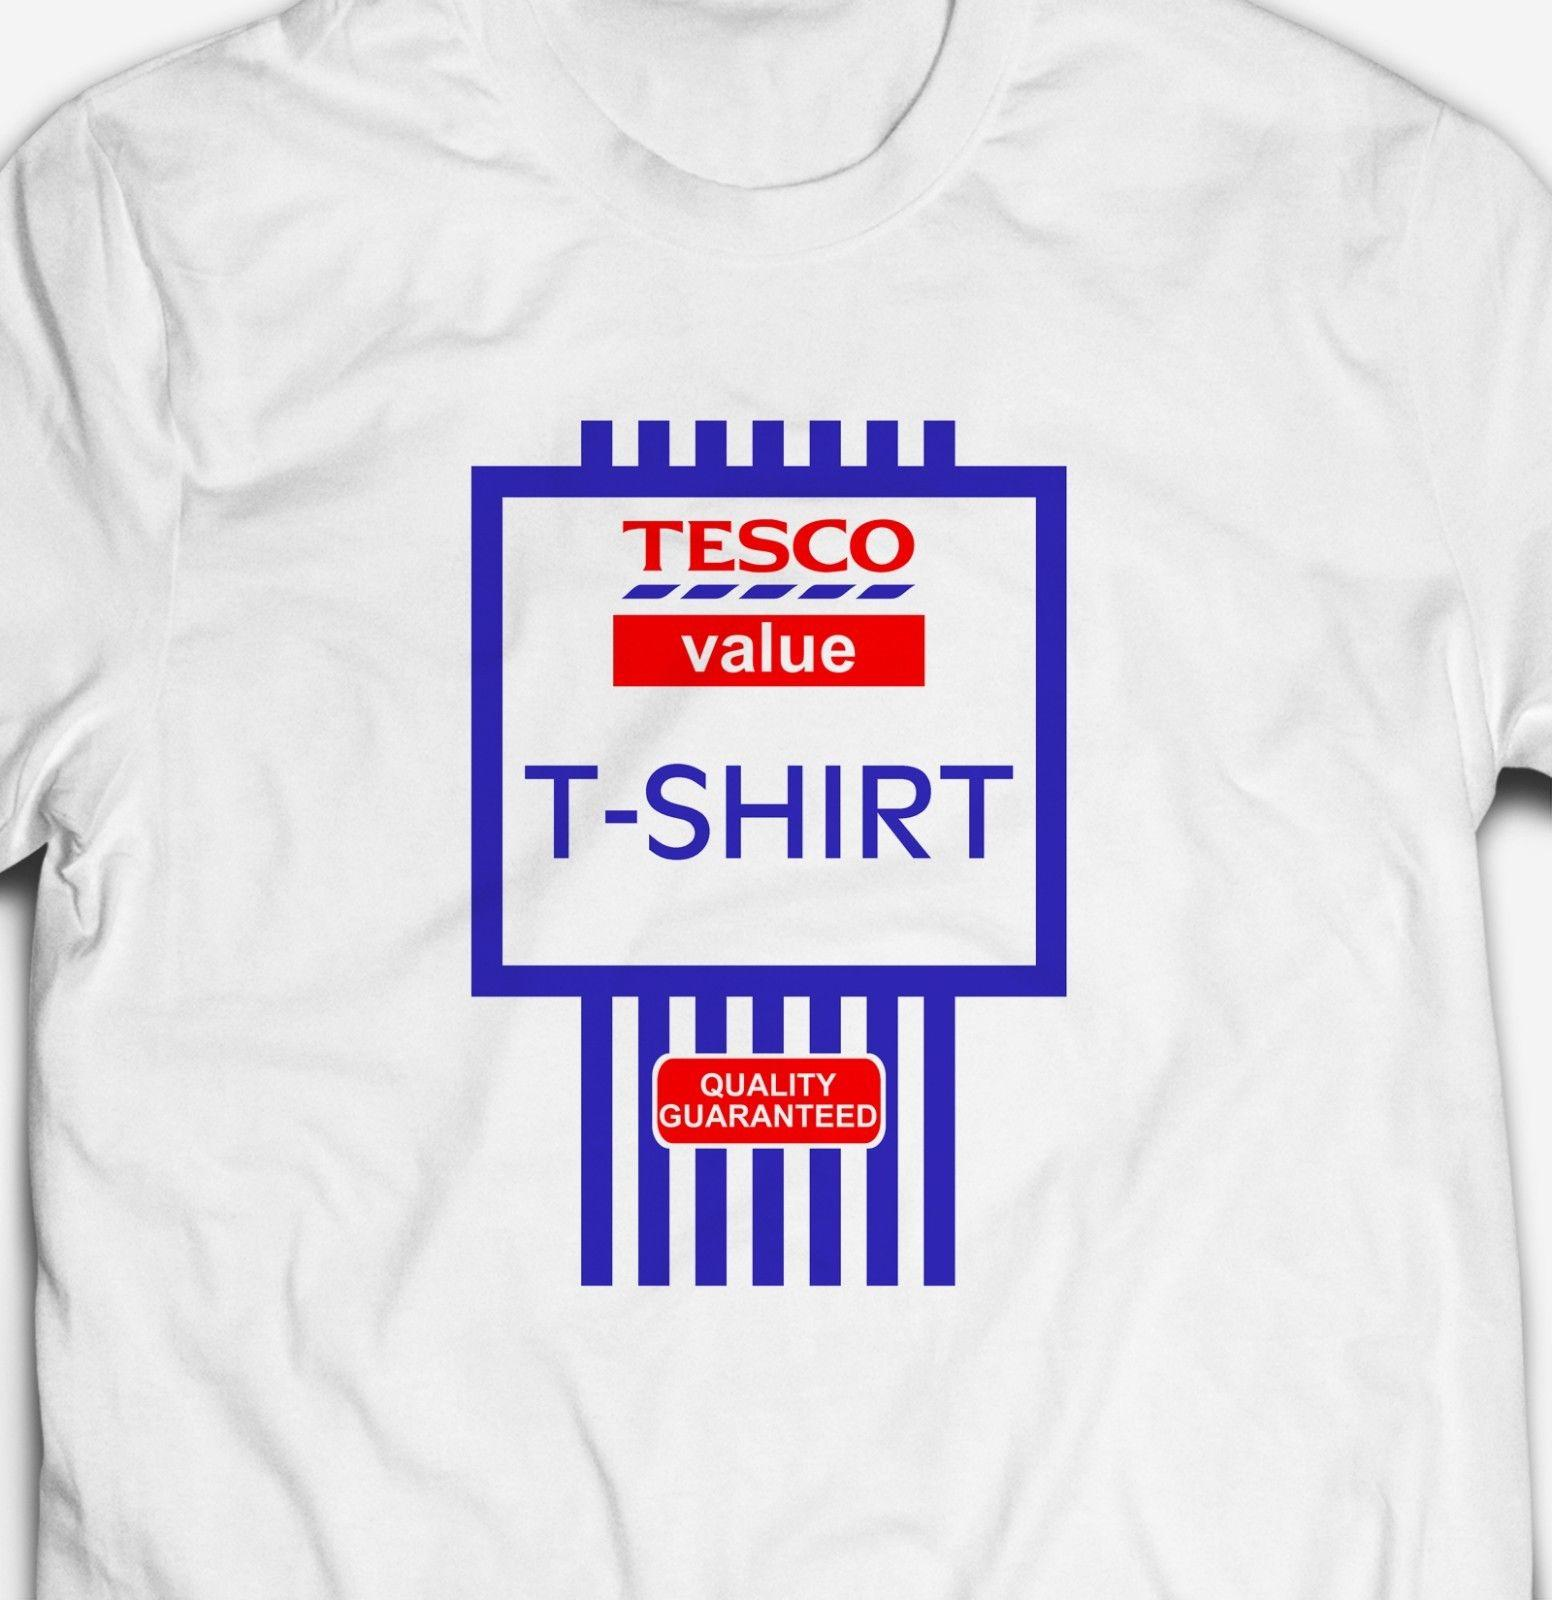 5624525e28417 FUNNY TESCO VALUE RETRO PRODUCT LABEL JOKE Mens Fit 100%Cotton Tees Custom  Jersey T Shirt Shop Online T Shirts T Shirt From Mooncup, $16.24| DHgate.Com